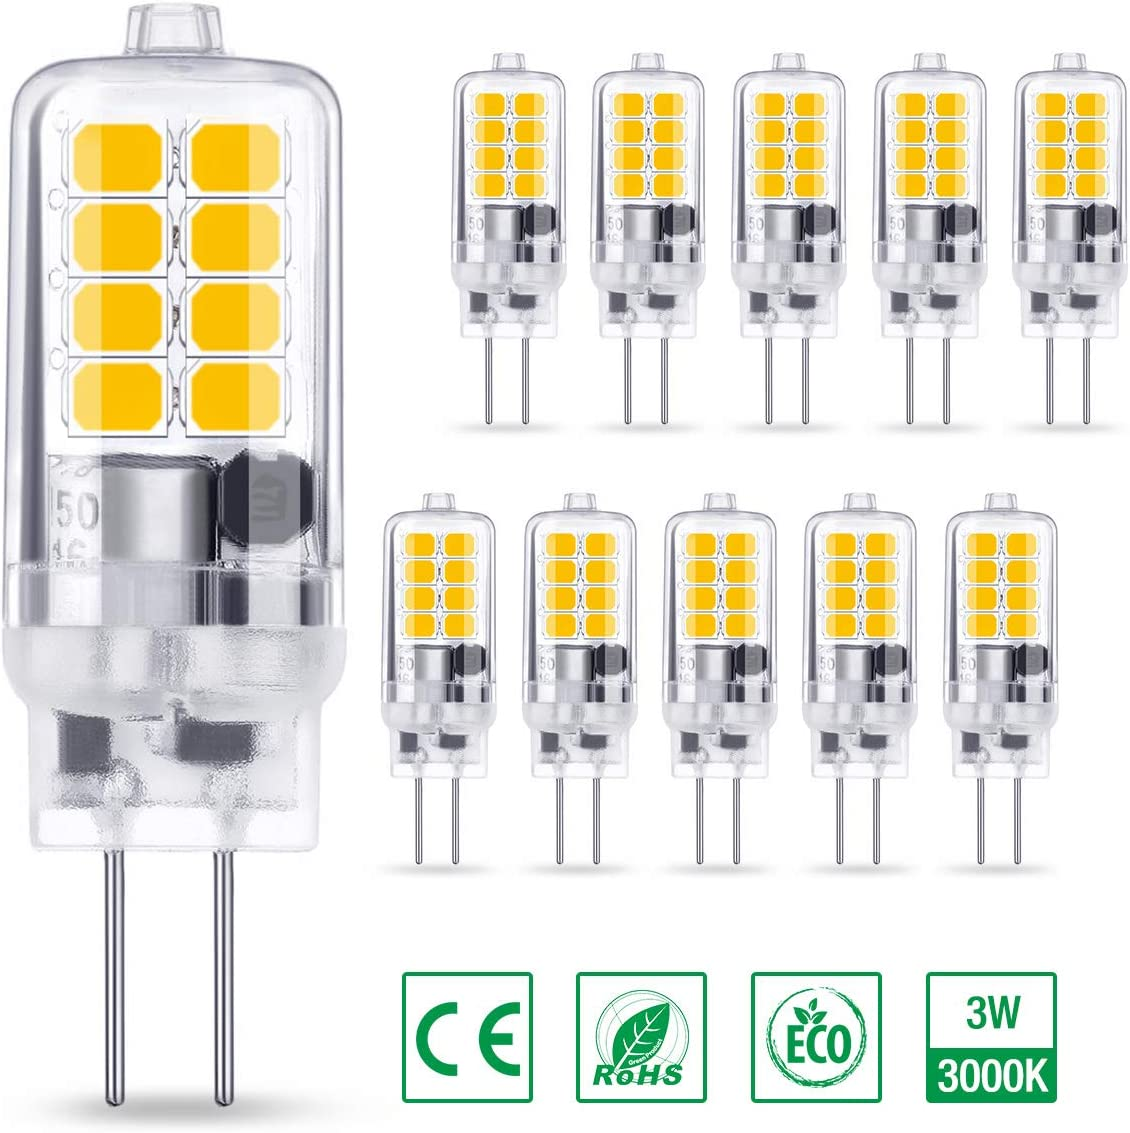 Ambother G4 Led Bulbs 3w Equivalent To 40w Halogen Bulbs Warm